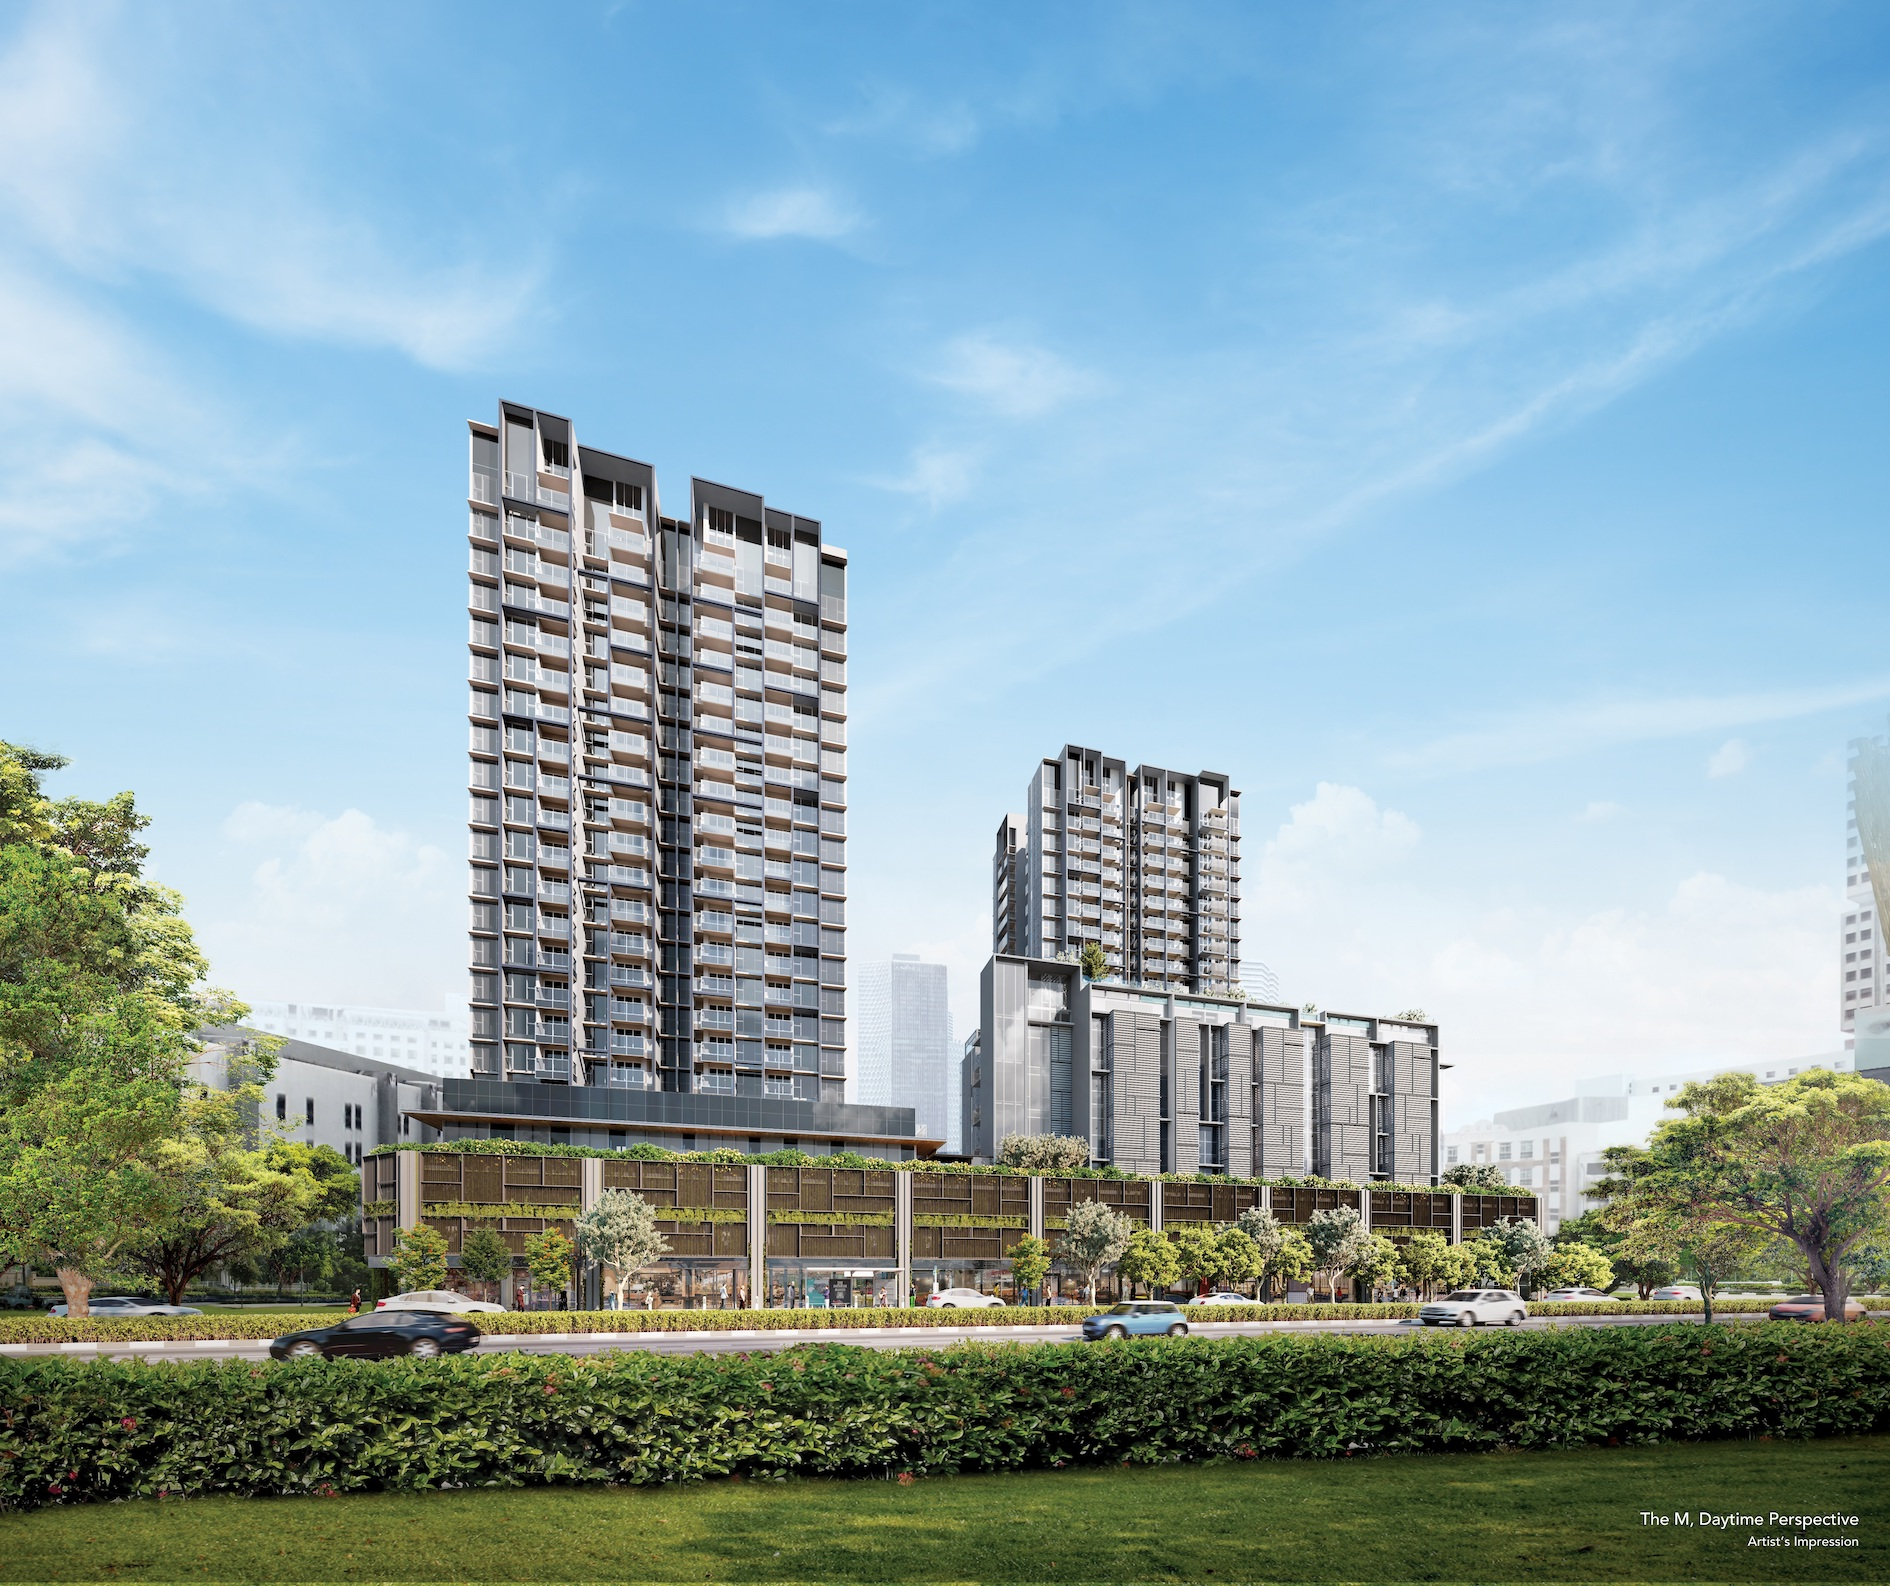 Artist's impression of the 522 units at The M, with two 20-storey residential towers and one six-storey residential block located on top of the commercial podium and carpark (Photo: Wing Tai Asia)